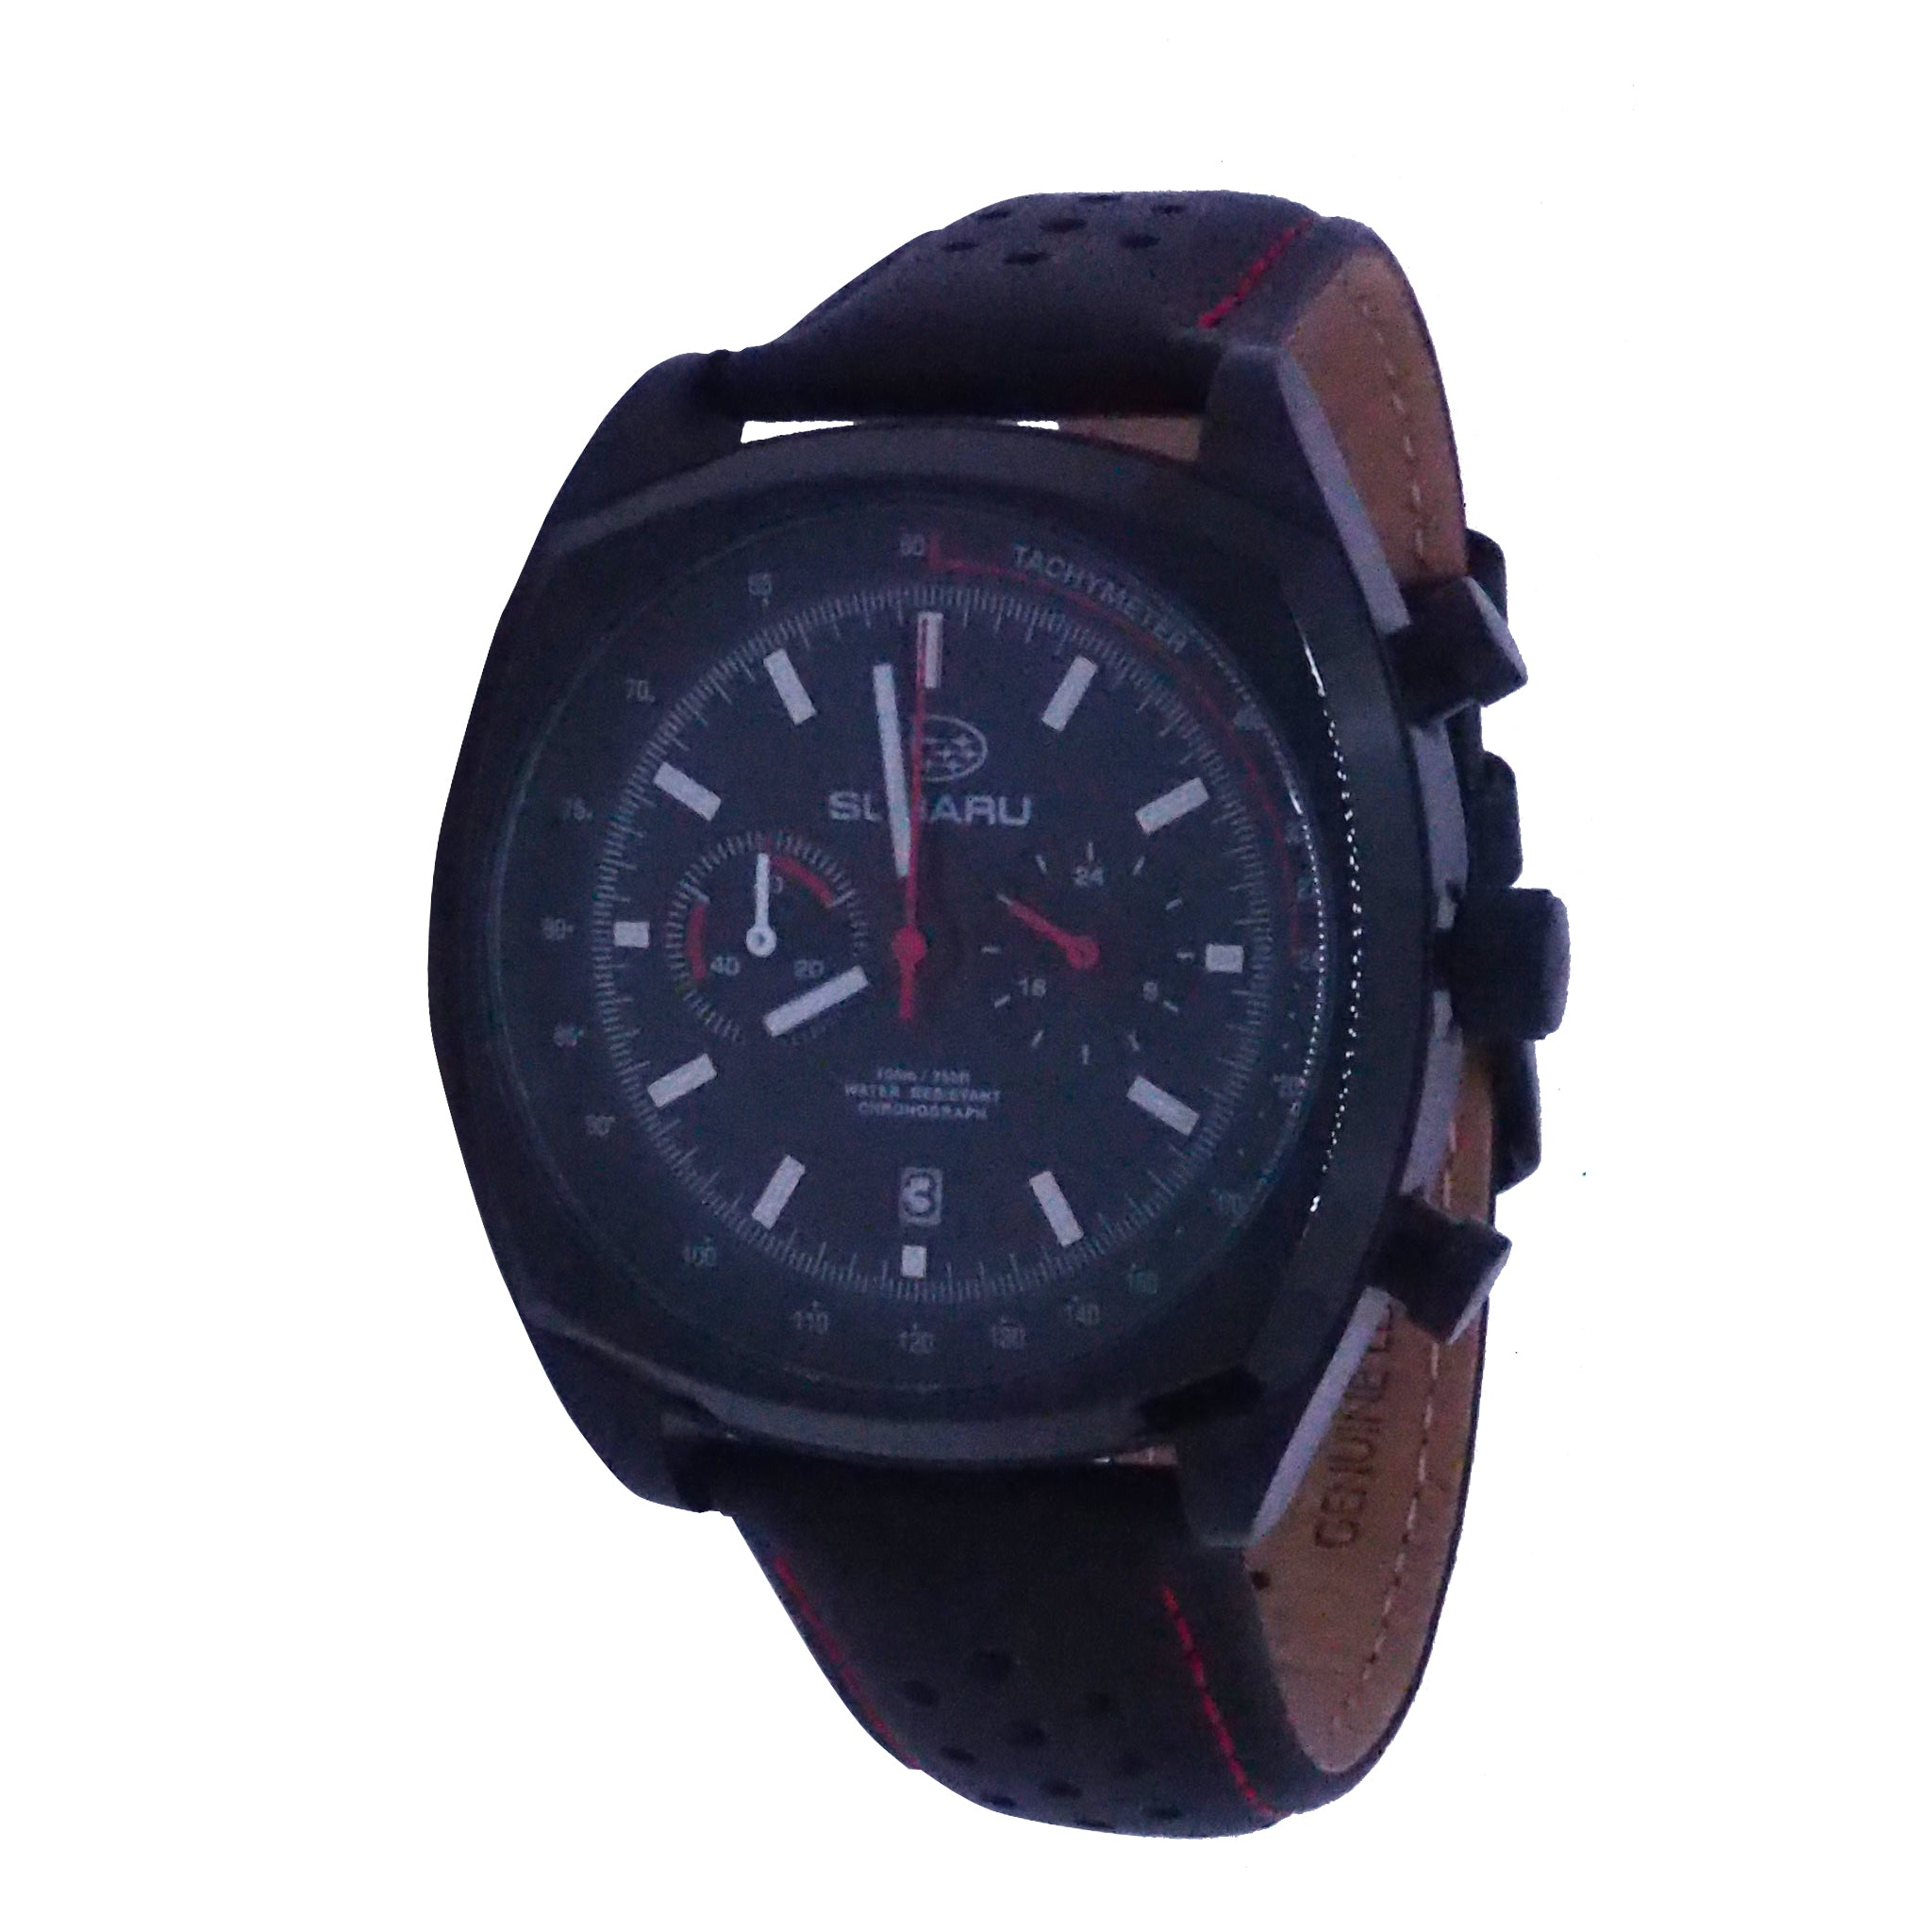 Subaru Motorsports Chronograph Leather Watch